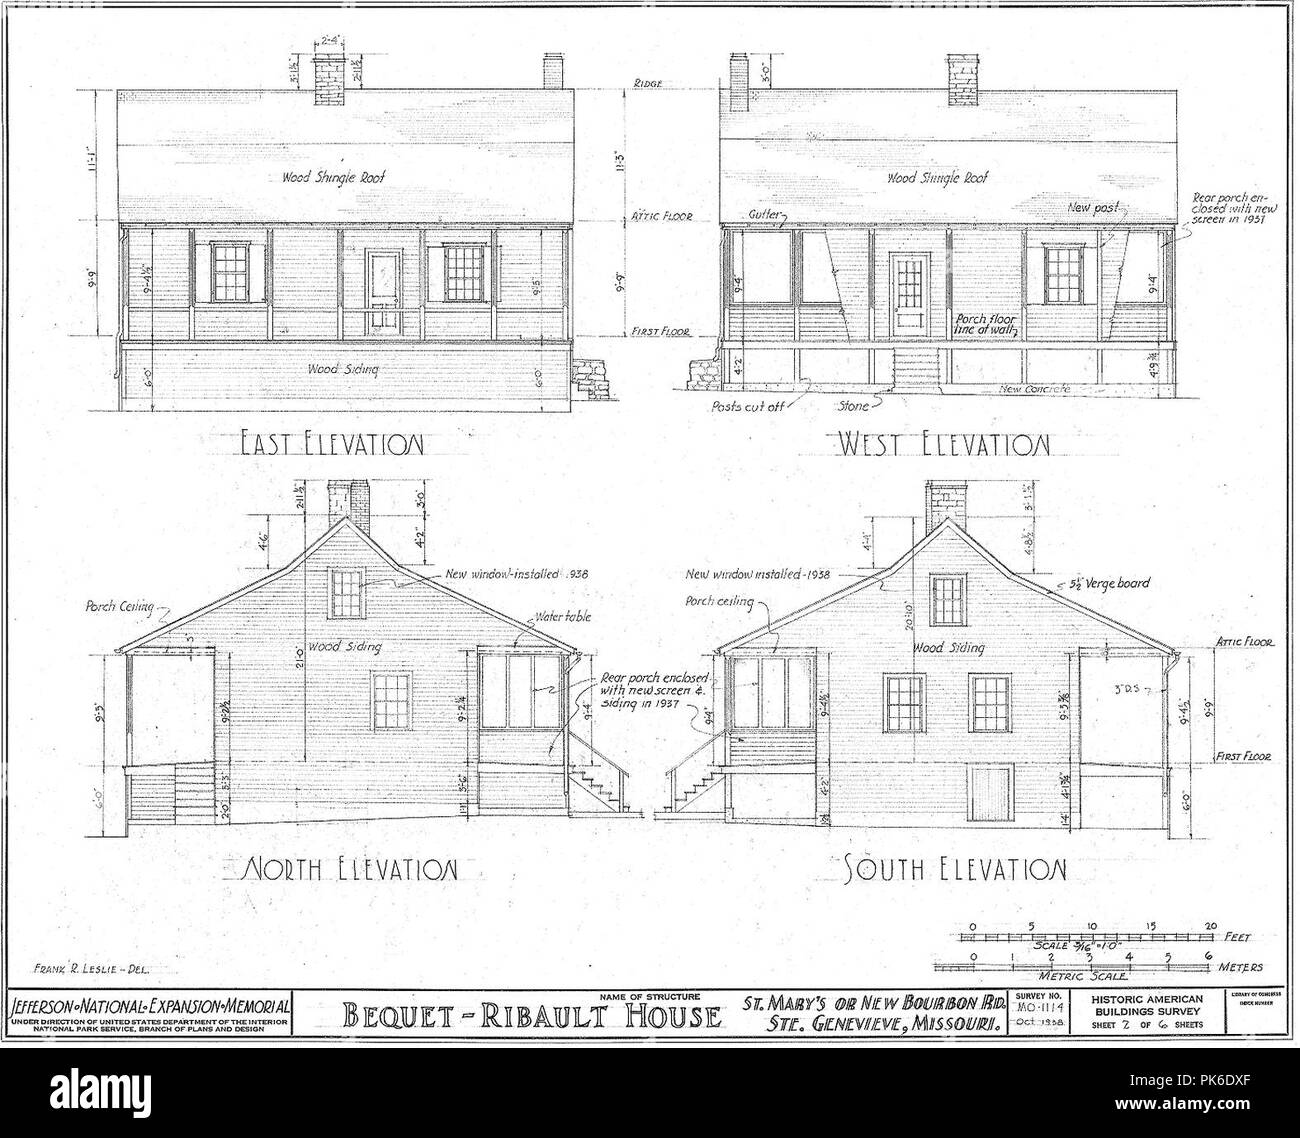 Bequet-Ribault House Elevations--Ste Genevieve MO. - Stock Image